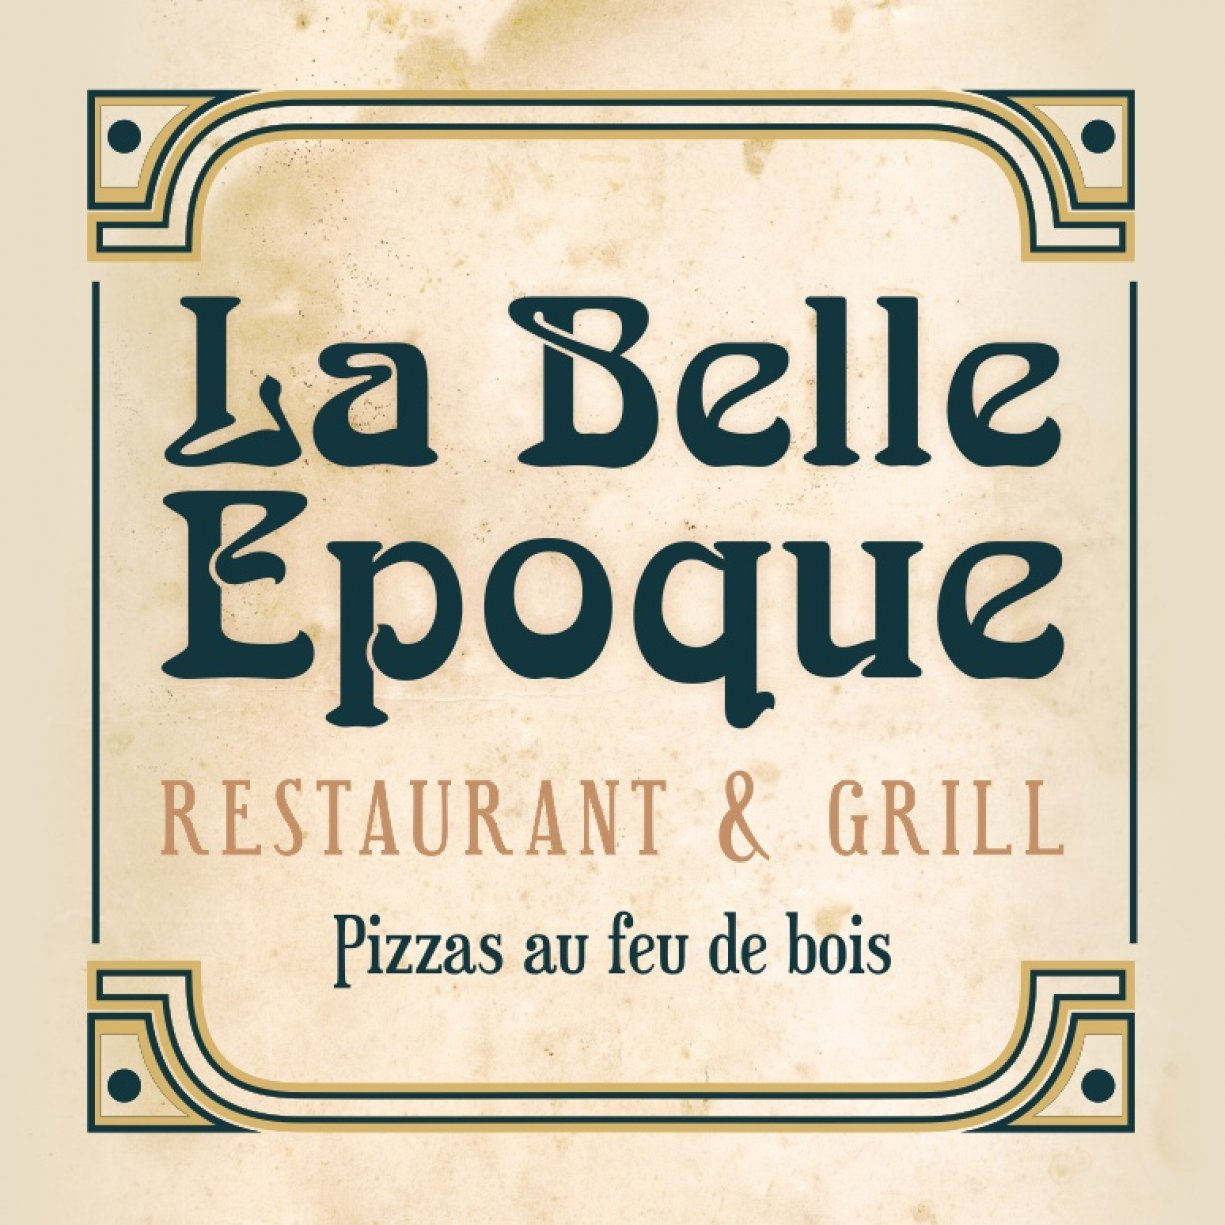 La belle epoque Restaurant